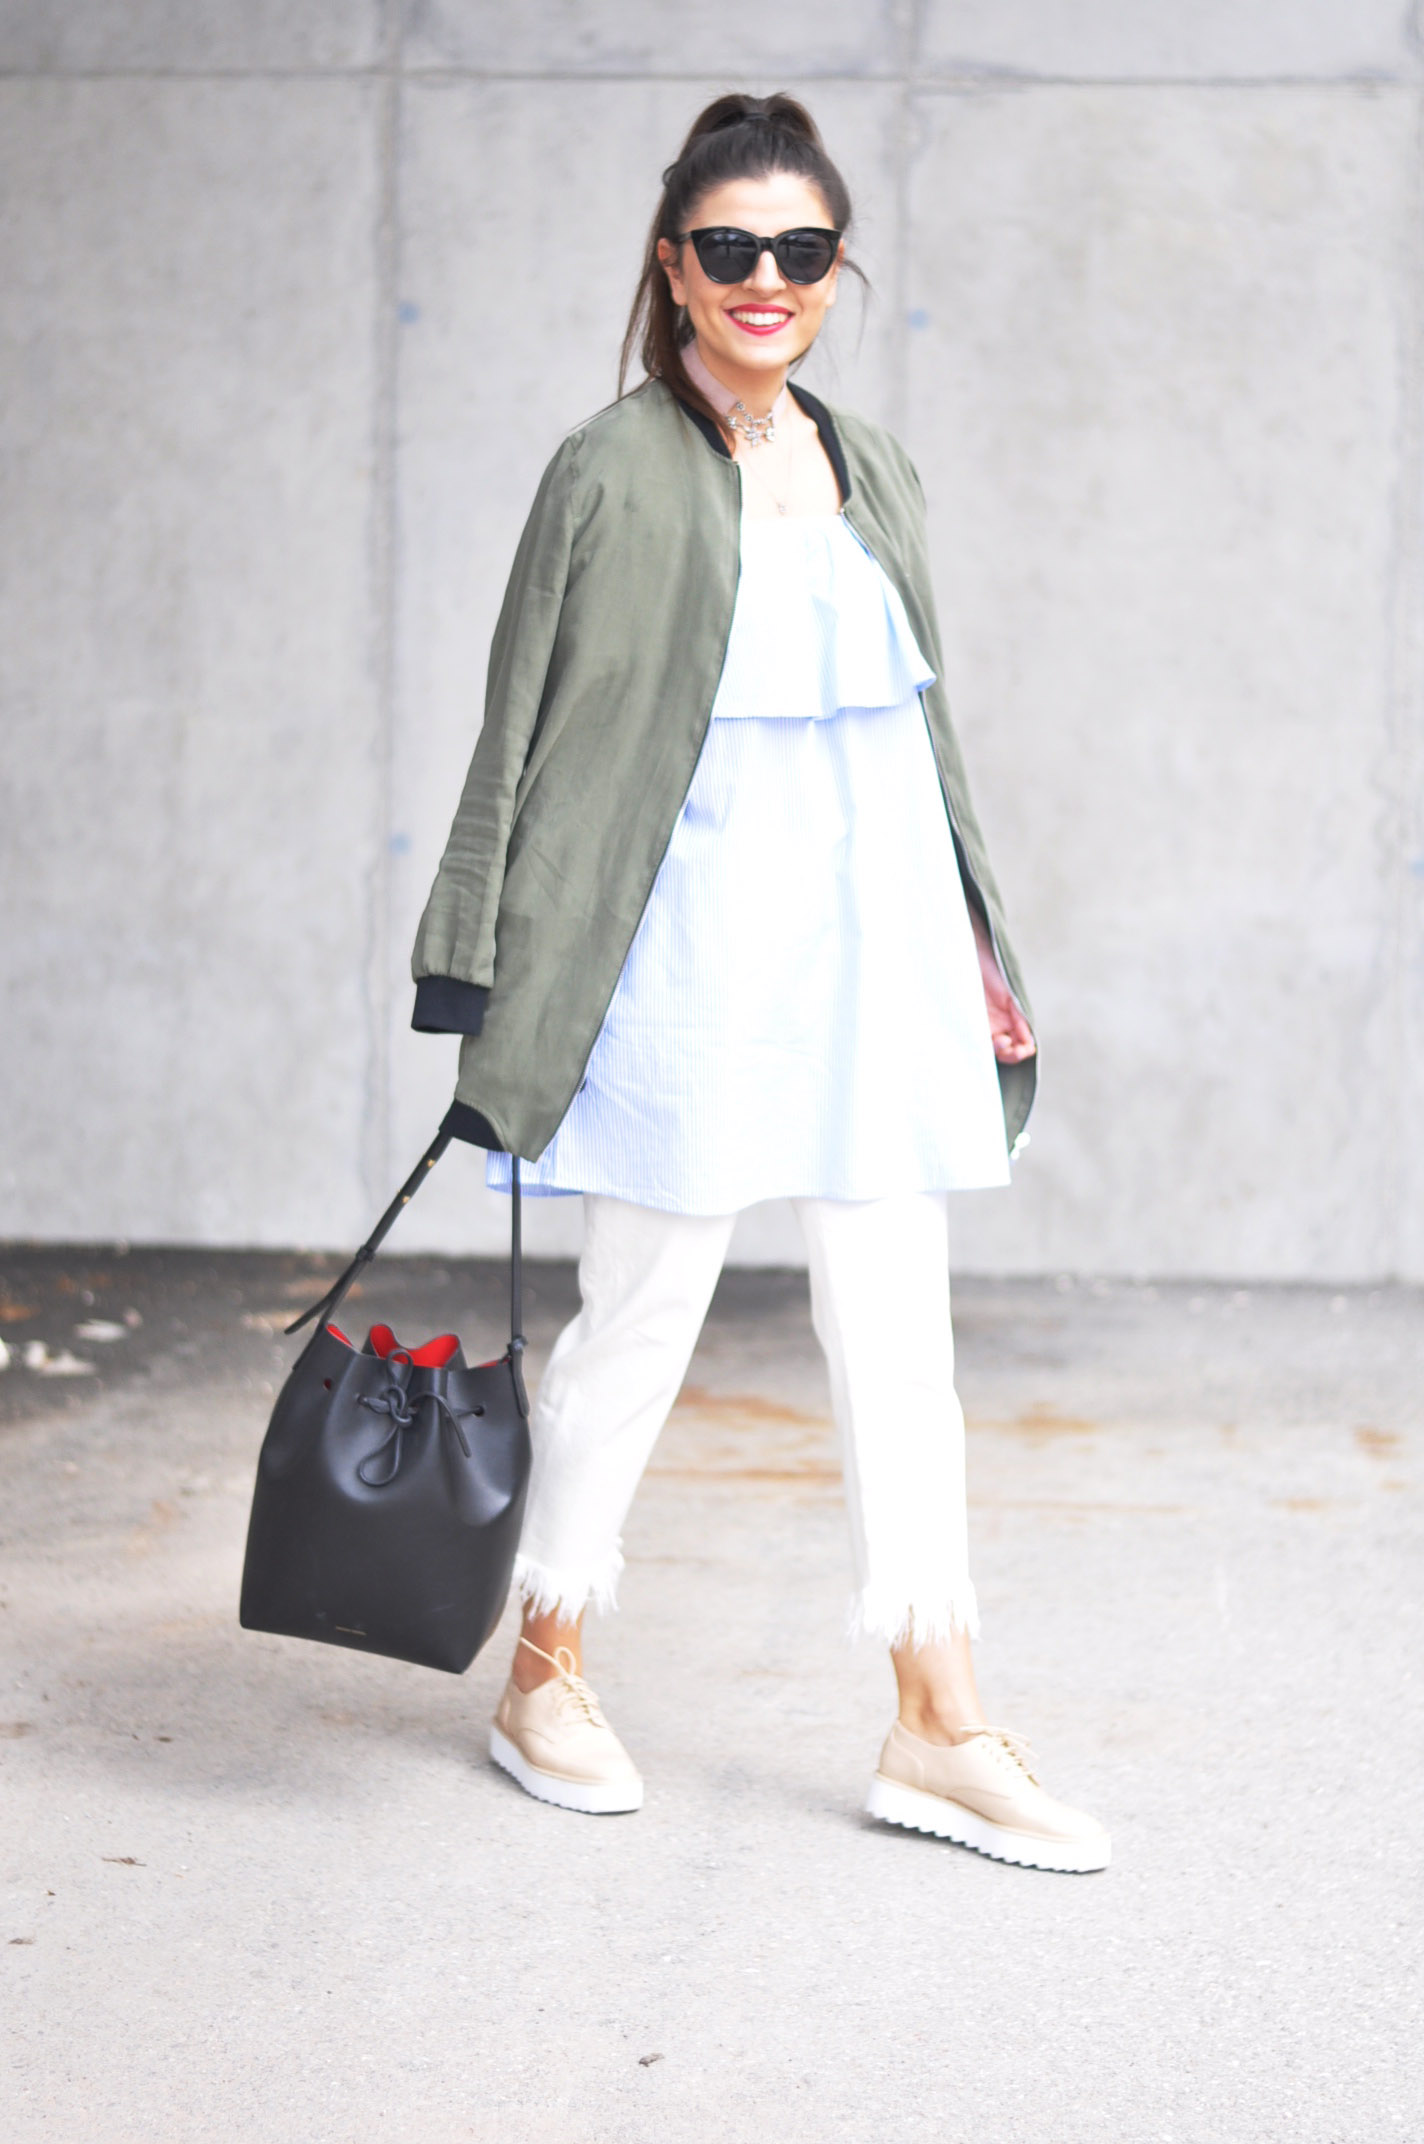 fashionnes-khaki-bomberjacket-off-shoulder